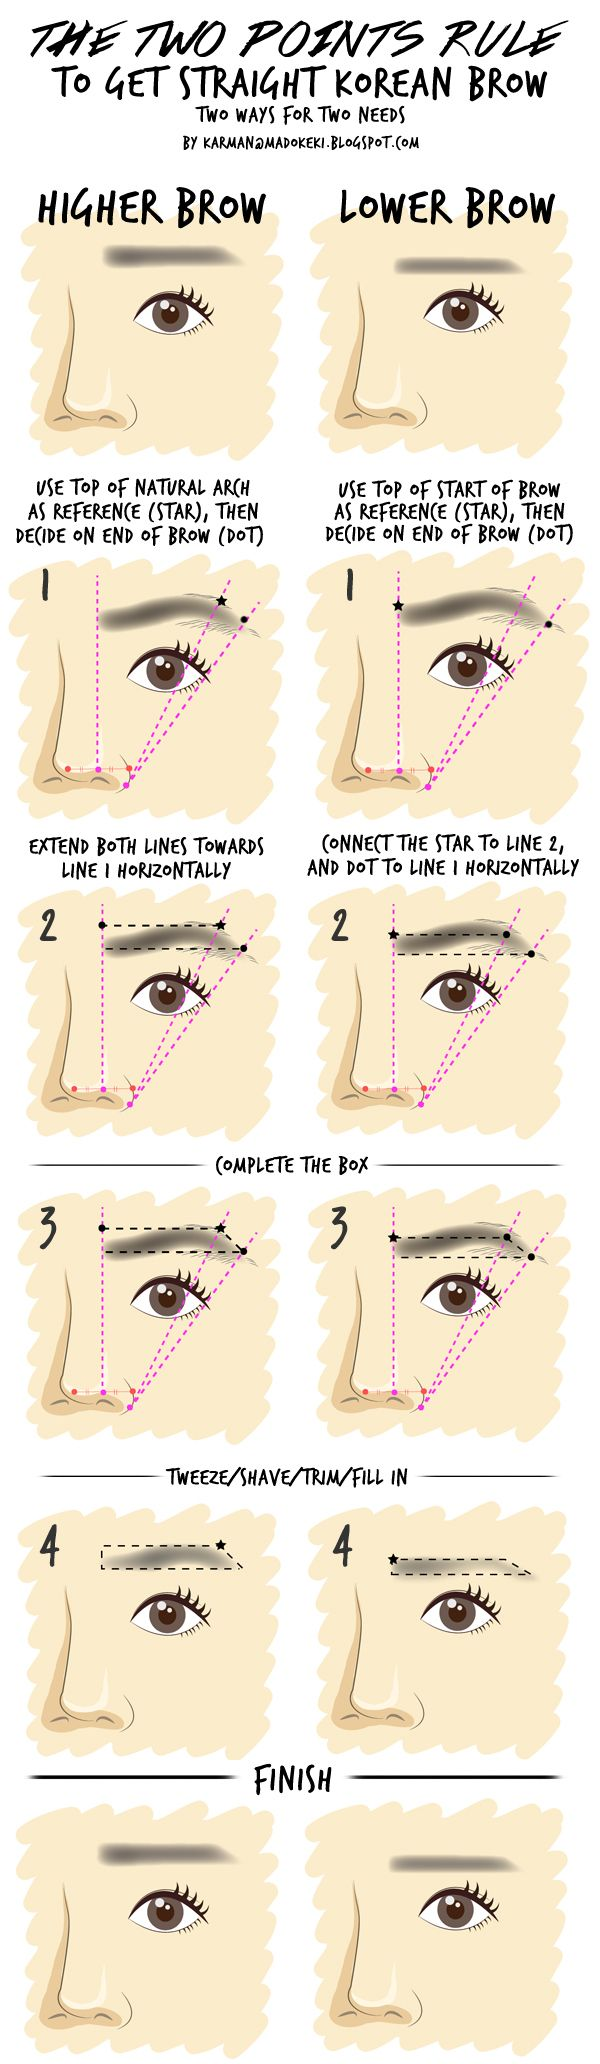 HOW TO: Shape and Groom Eyebrow (For Beginners) | MADOKEKI makeup reviews, tutor...